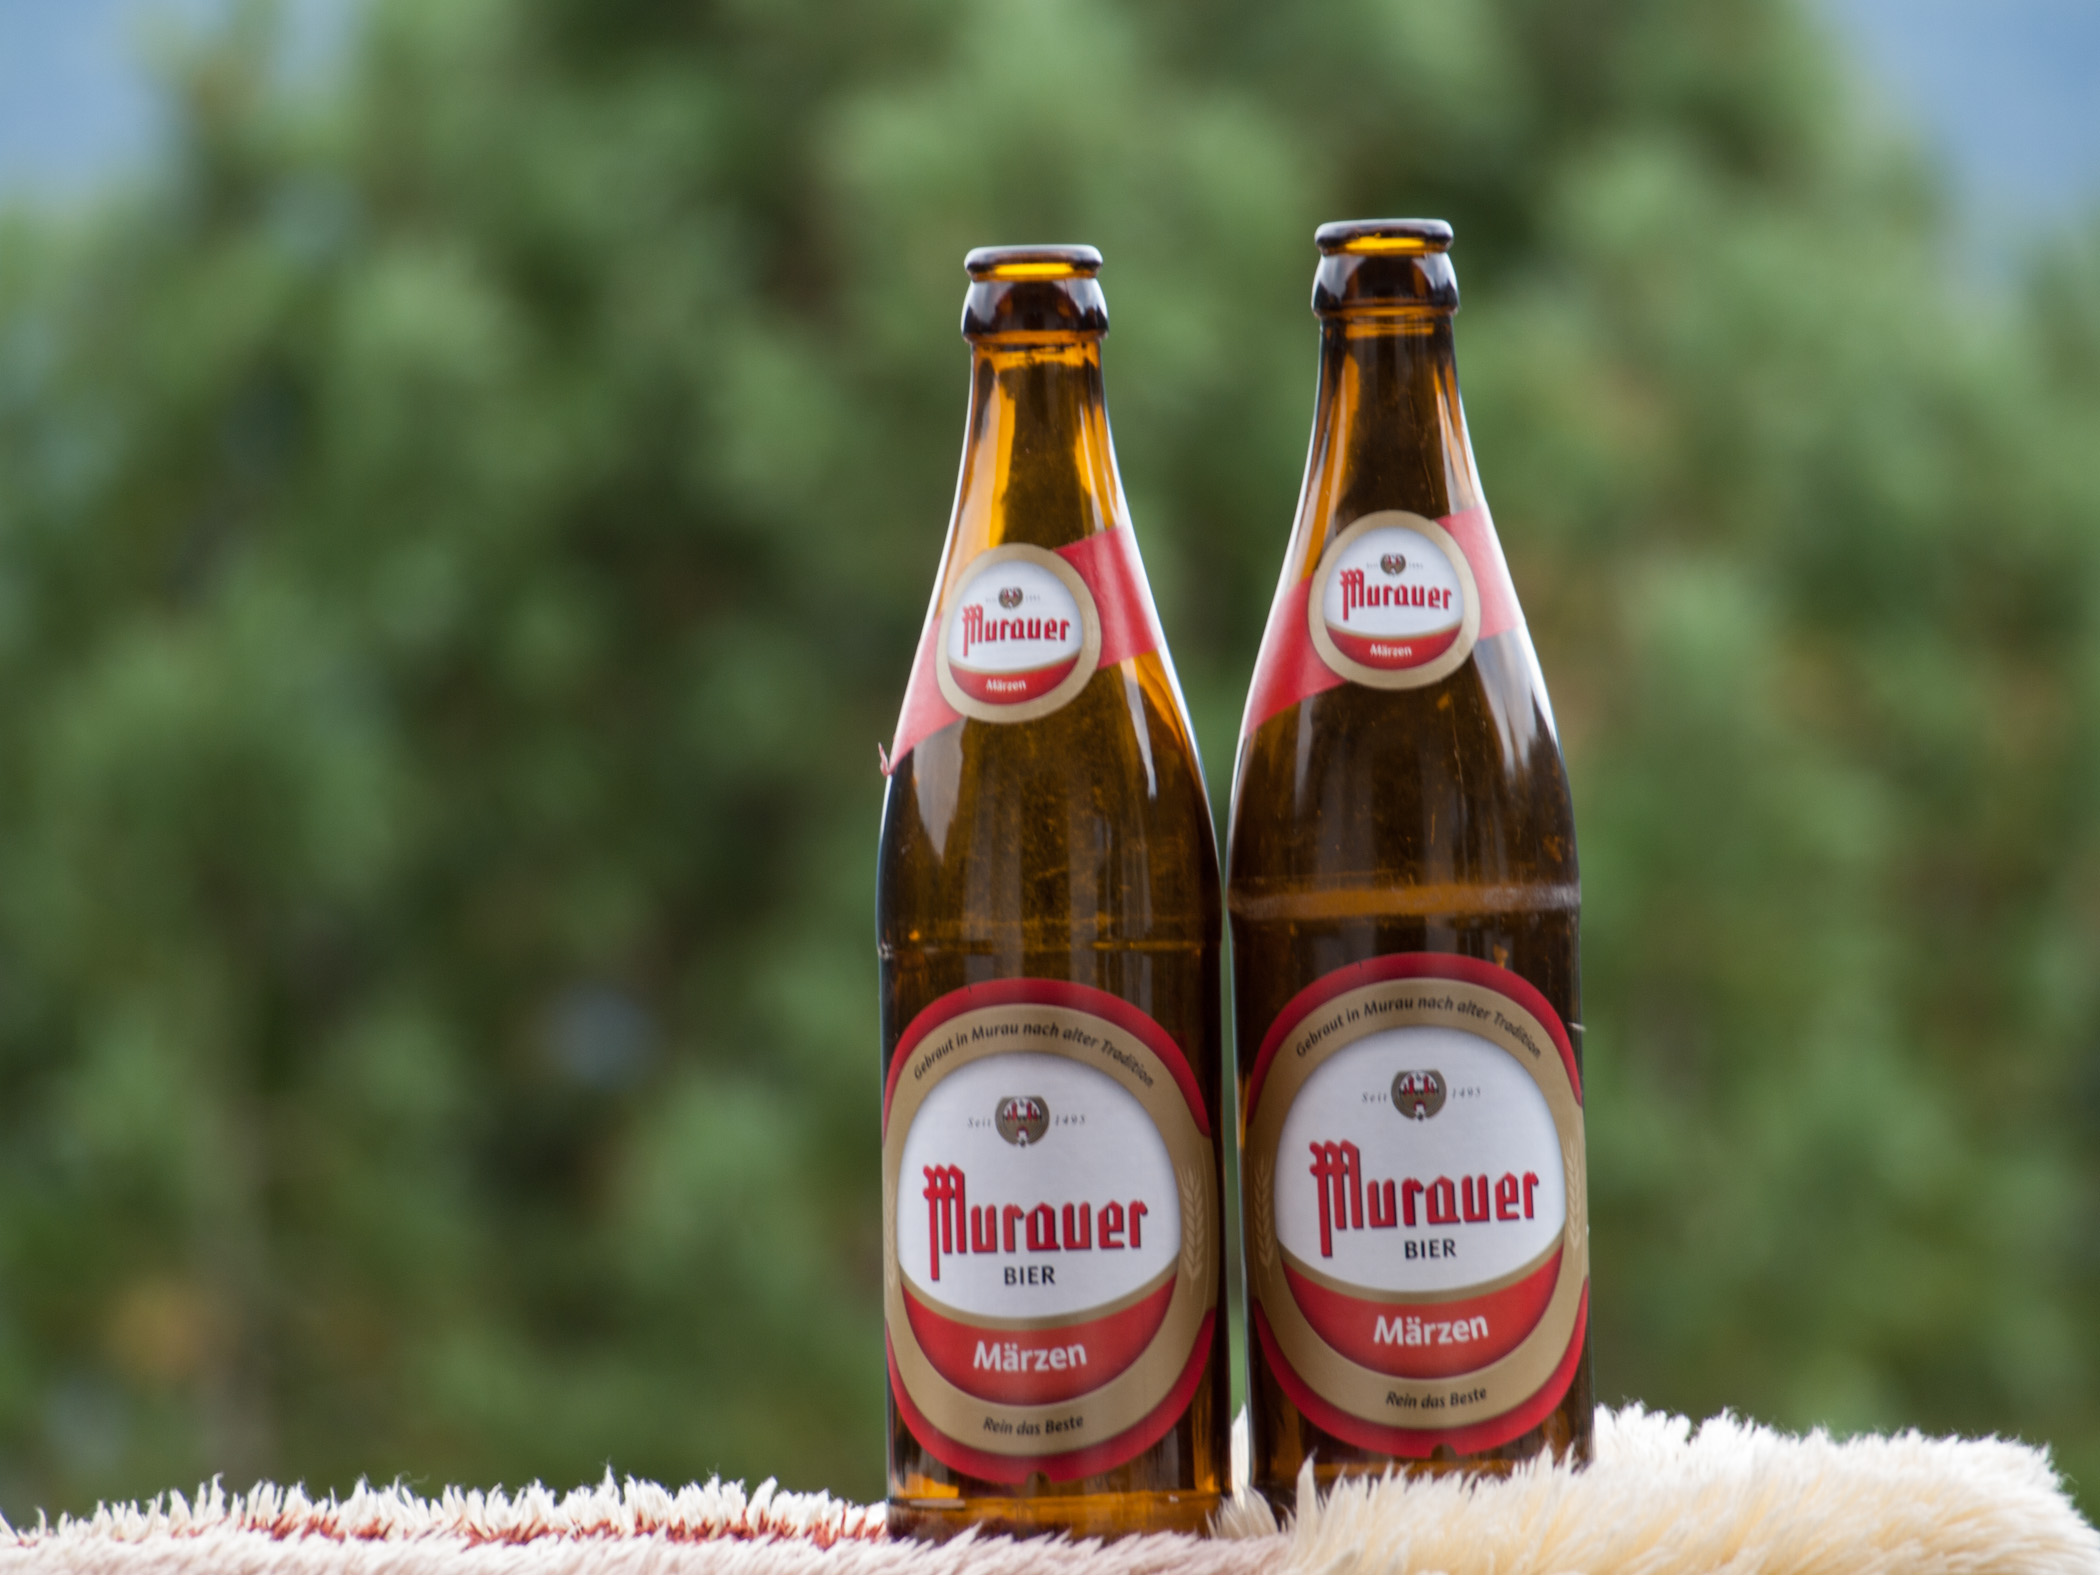 Murauer Beer sold all over Austria